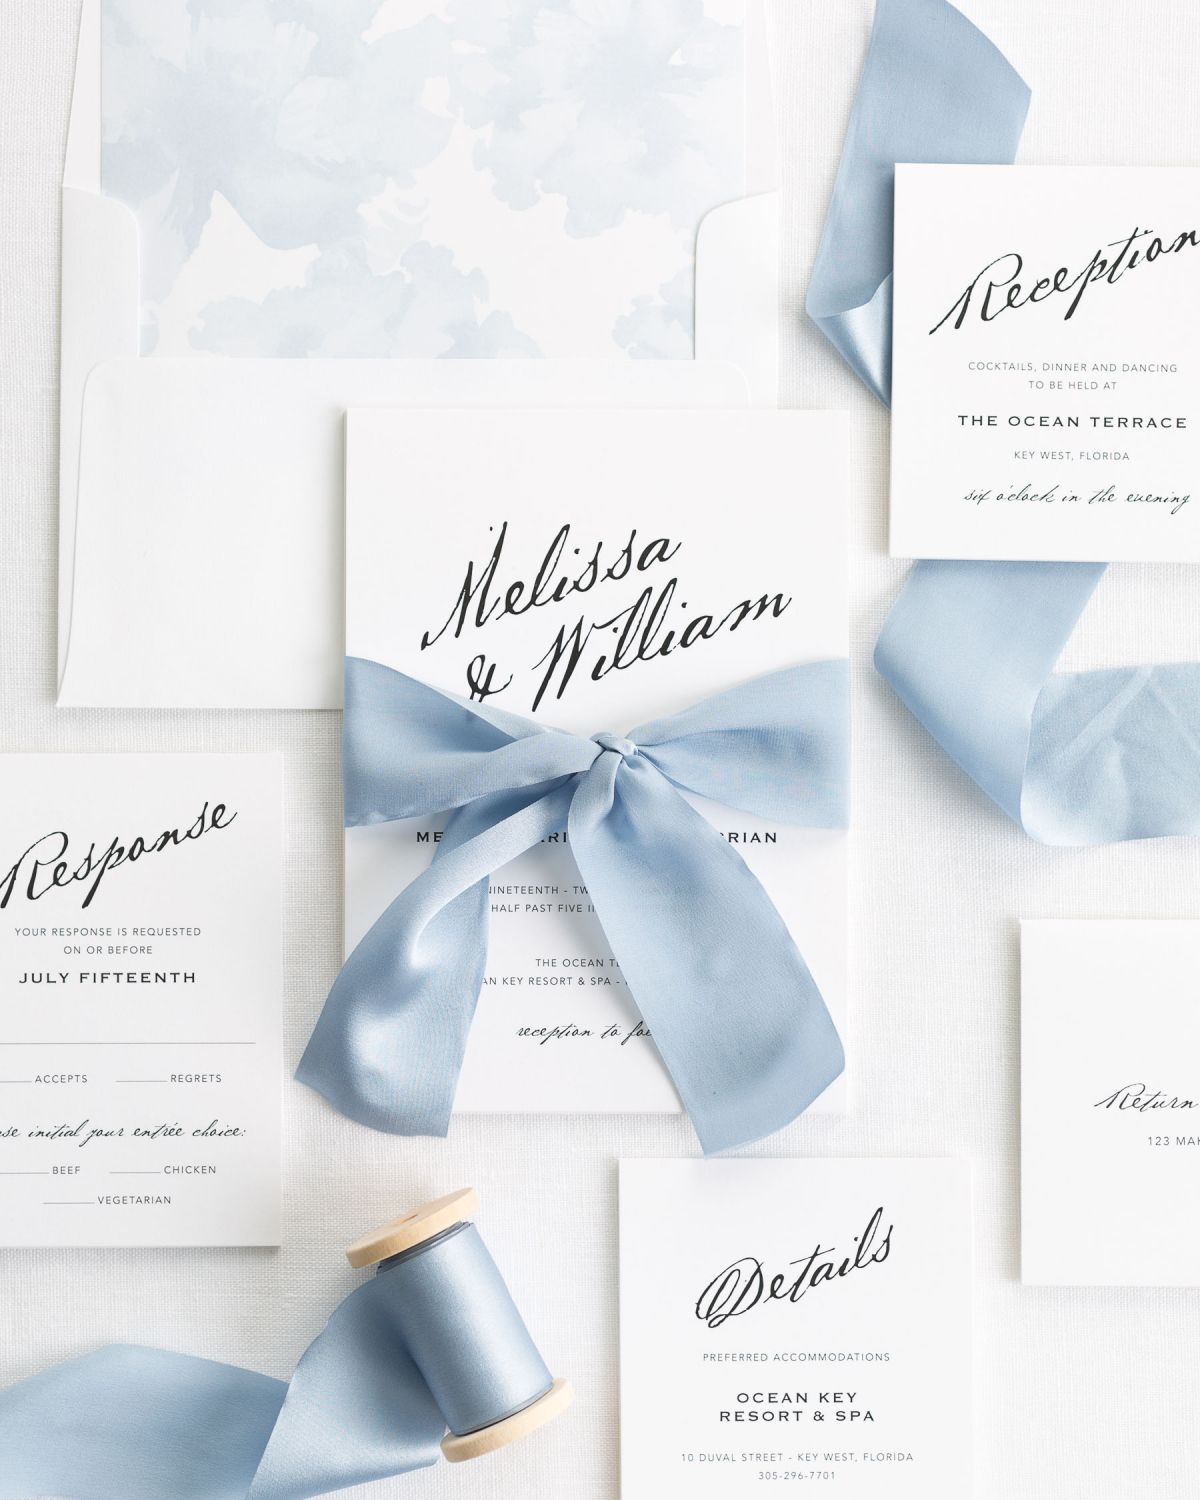 Complete Wedding Invitations with Light Blue Ribbon and Enclosures